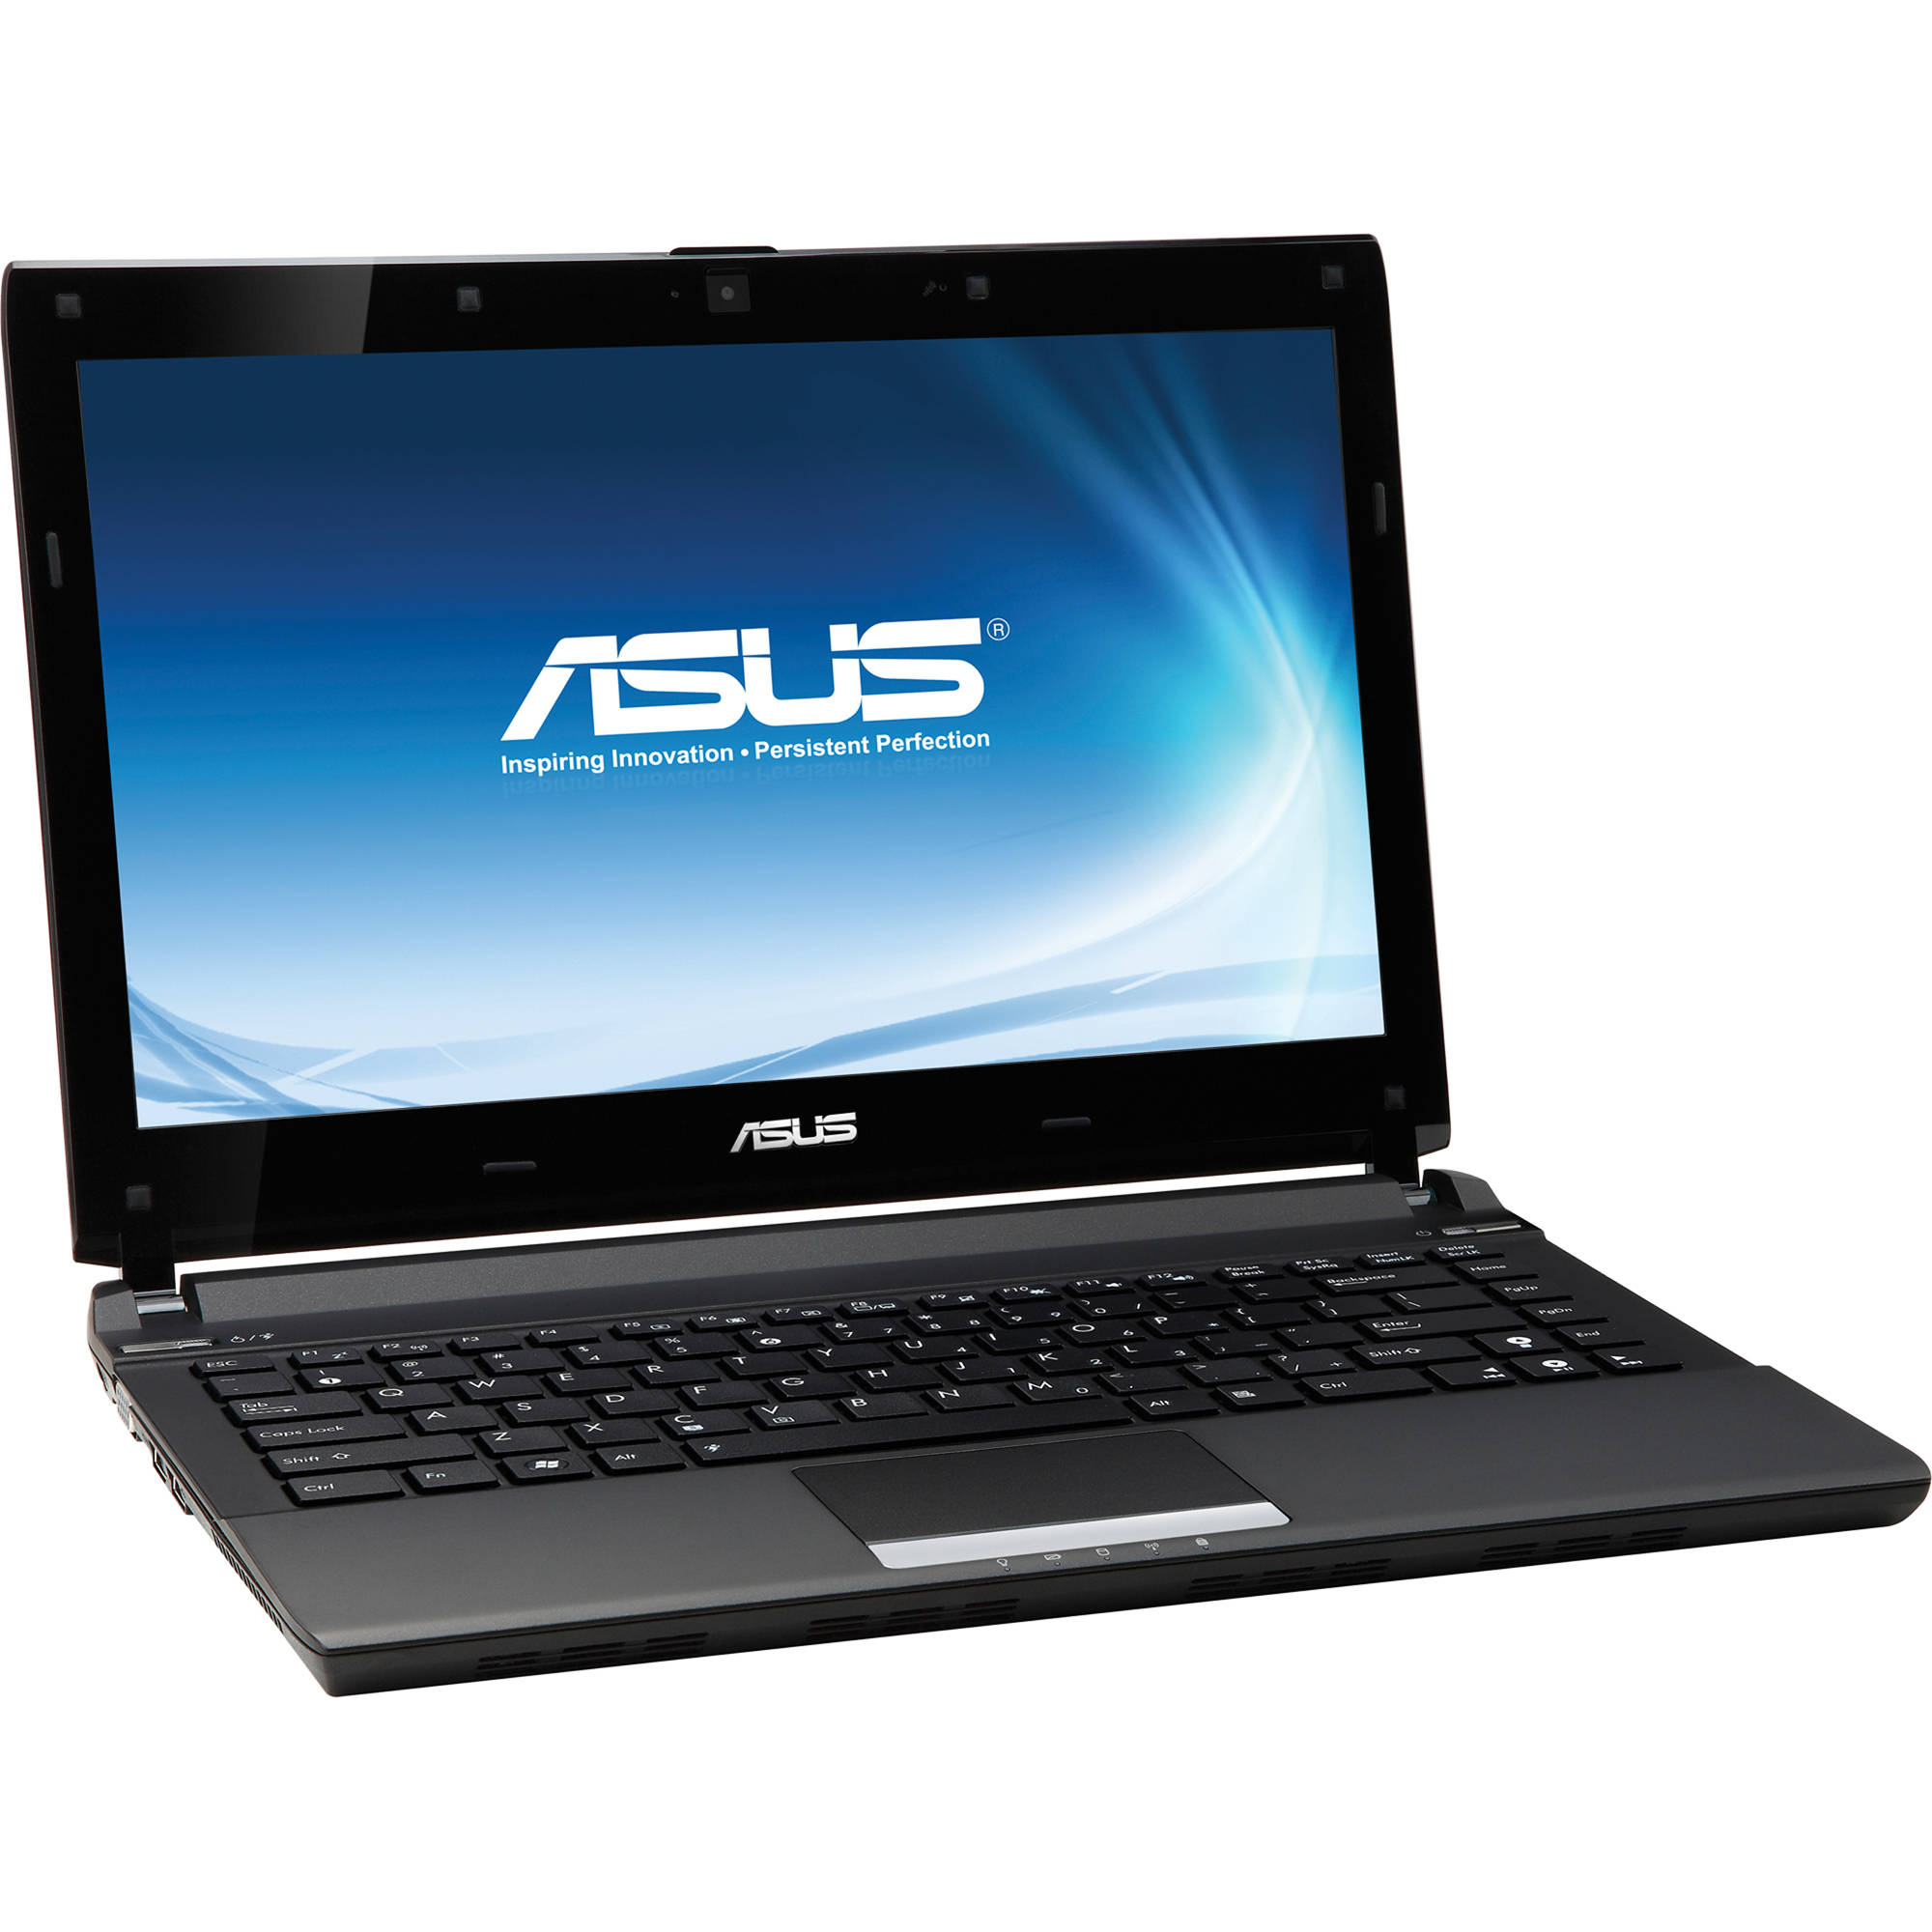 Asus U36SG Notebook Authentec Fingerprint Update